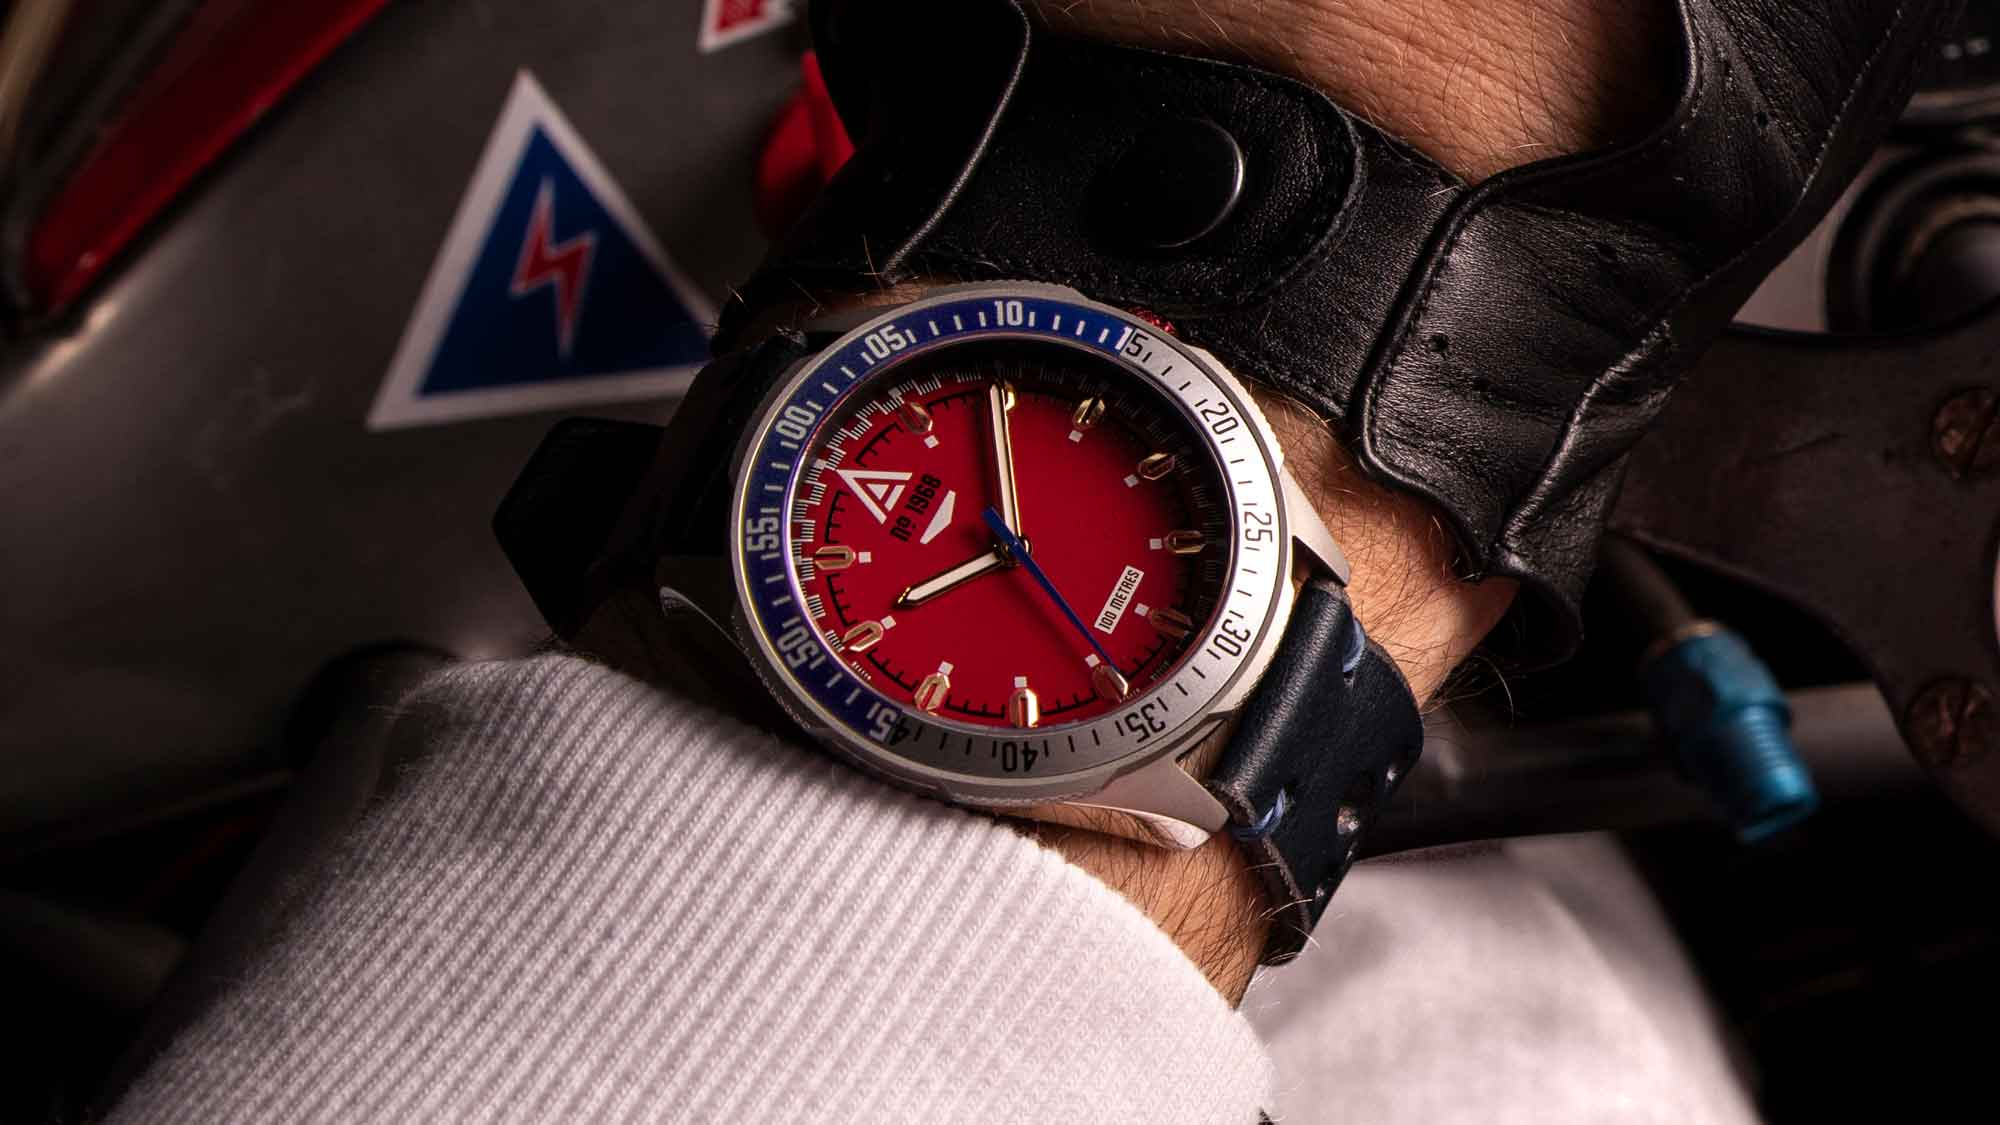 racing watch wt author red no 1968 wrist shot